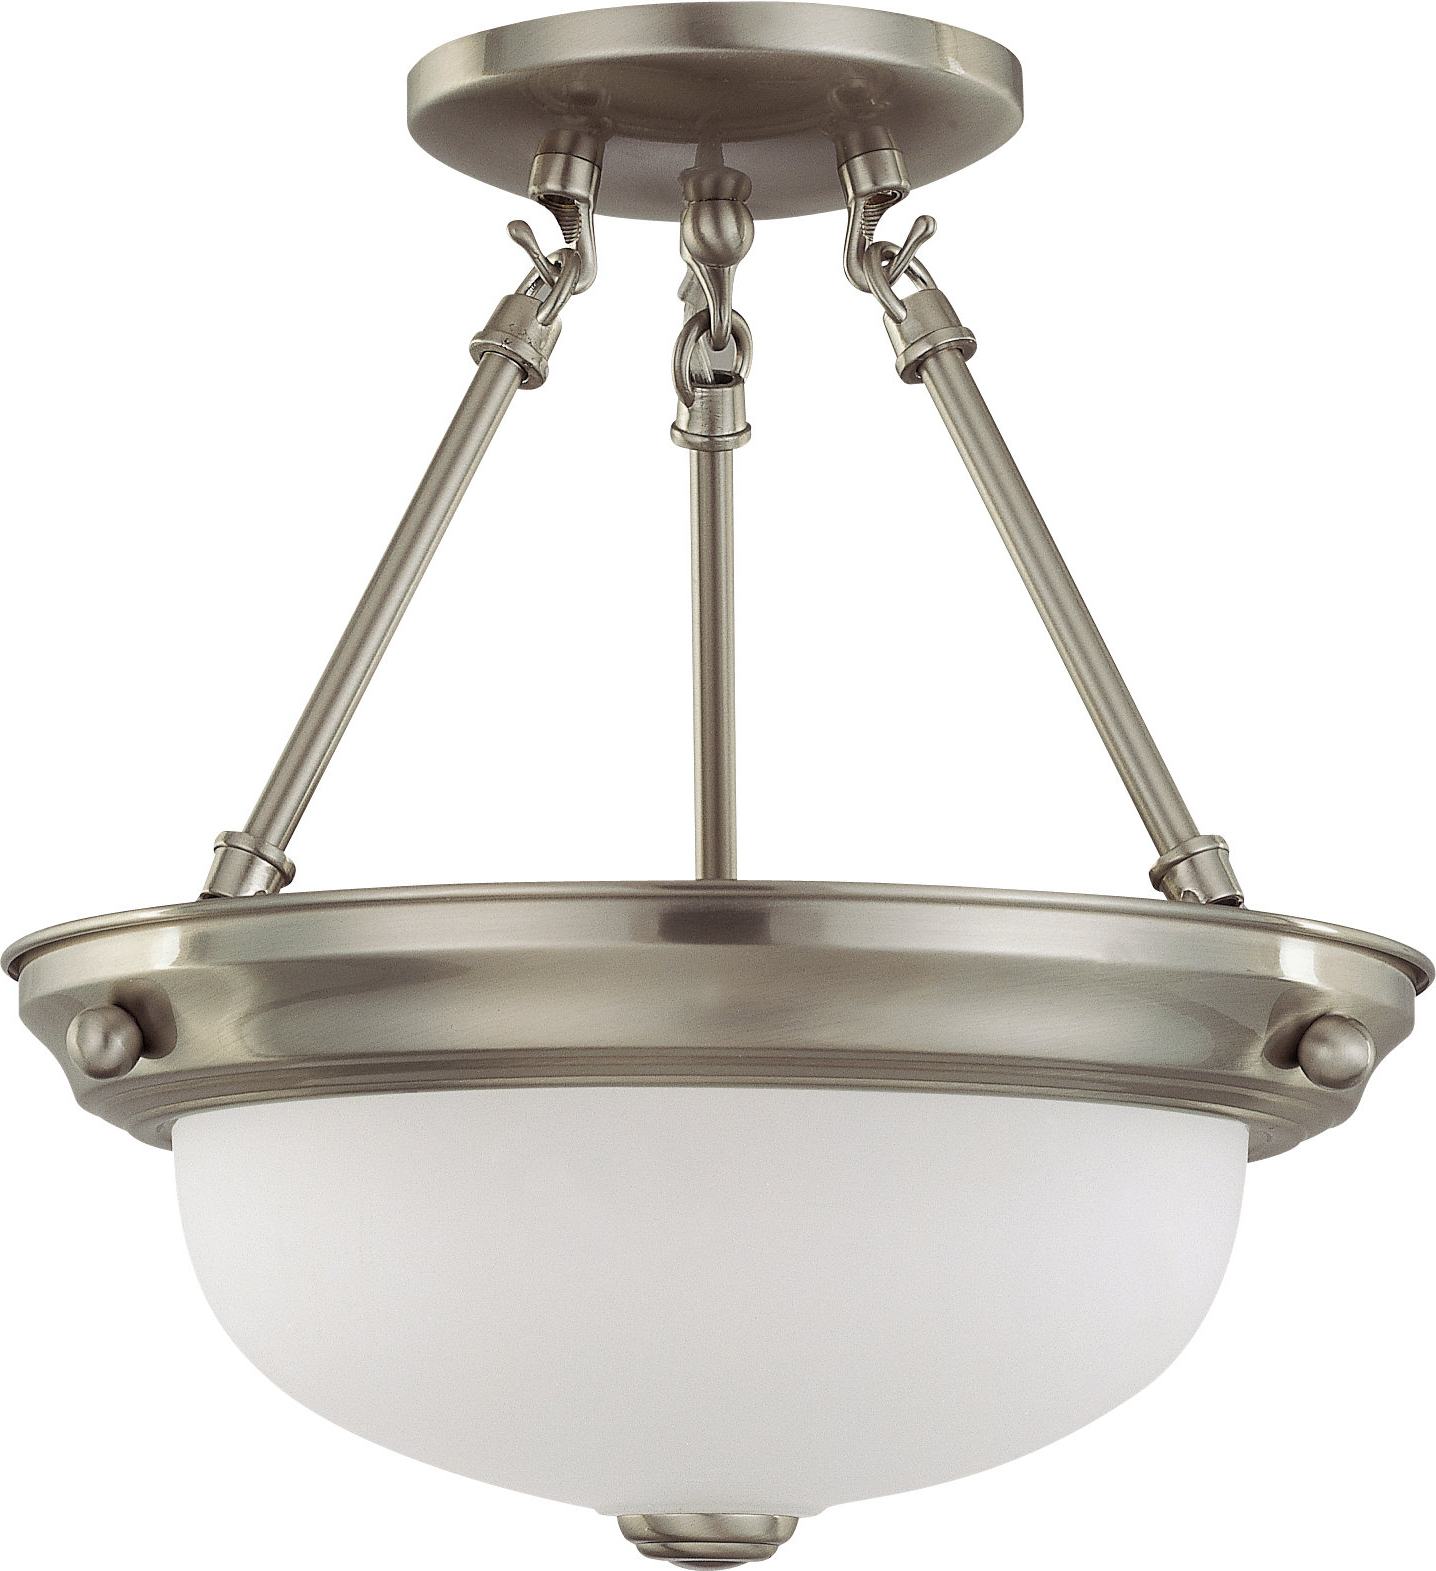 Baumgartner 1 Light Bowl Pendant With Most Up To Date Alayna 4 Light Shaded Chandeliers (Gallery 17 of 20)